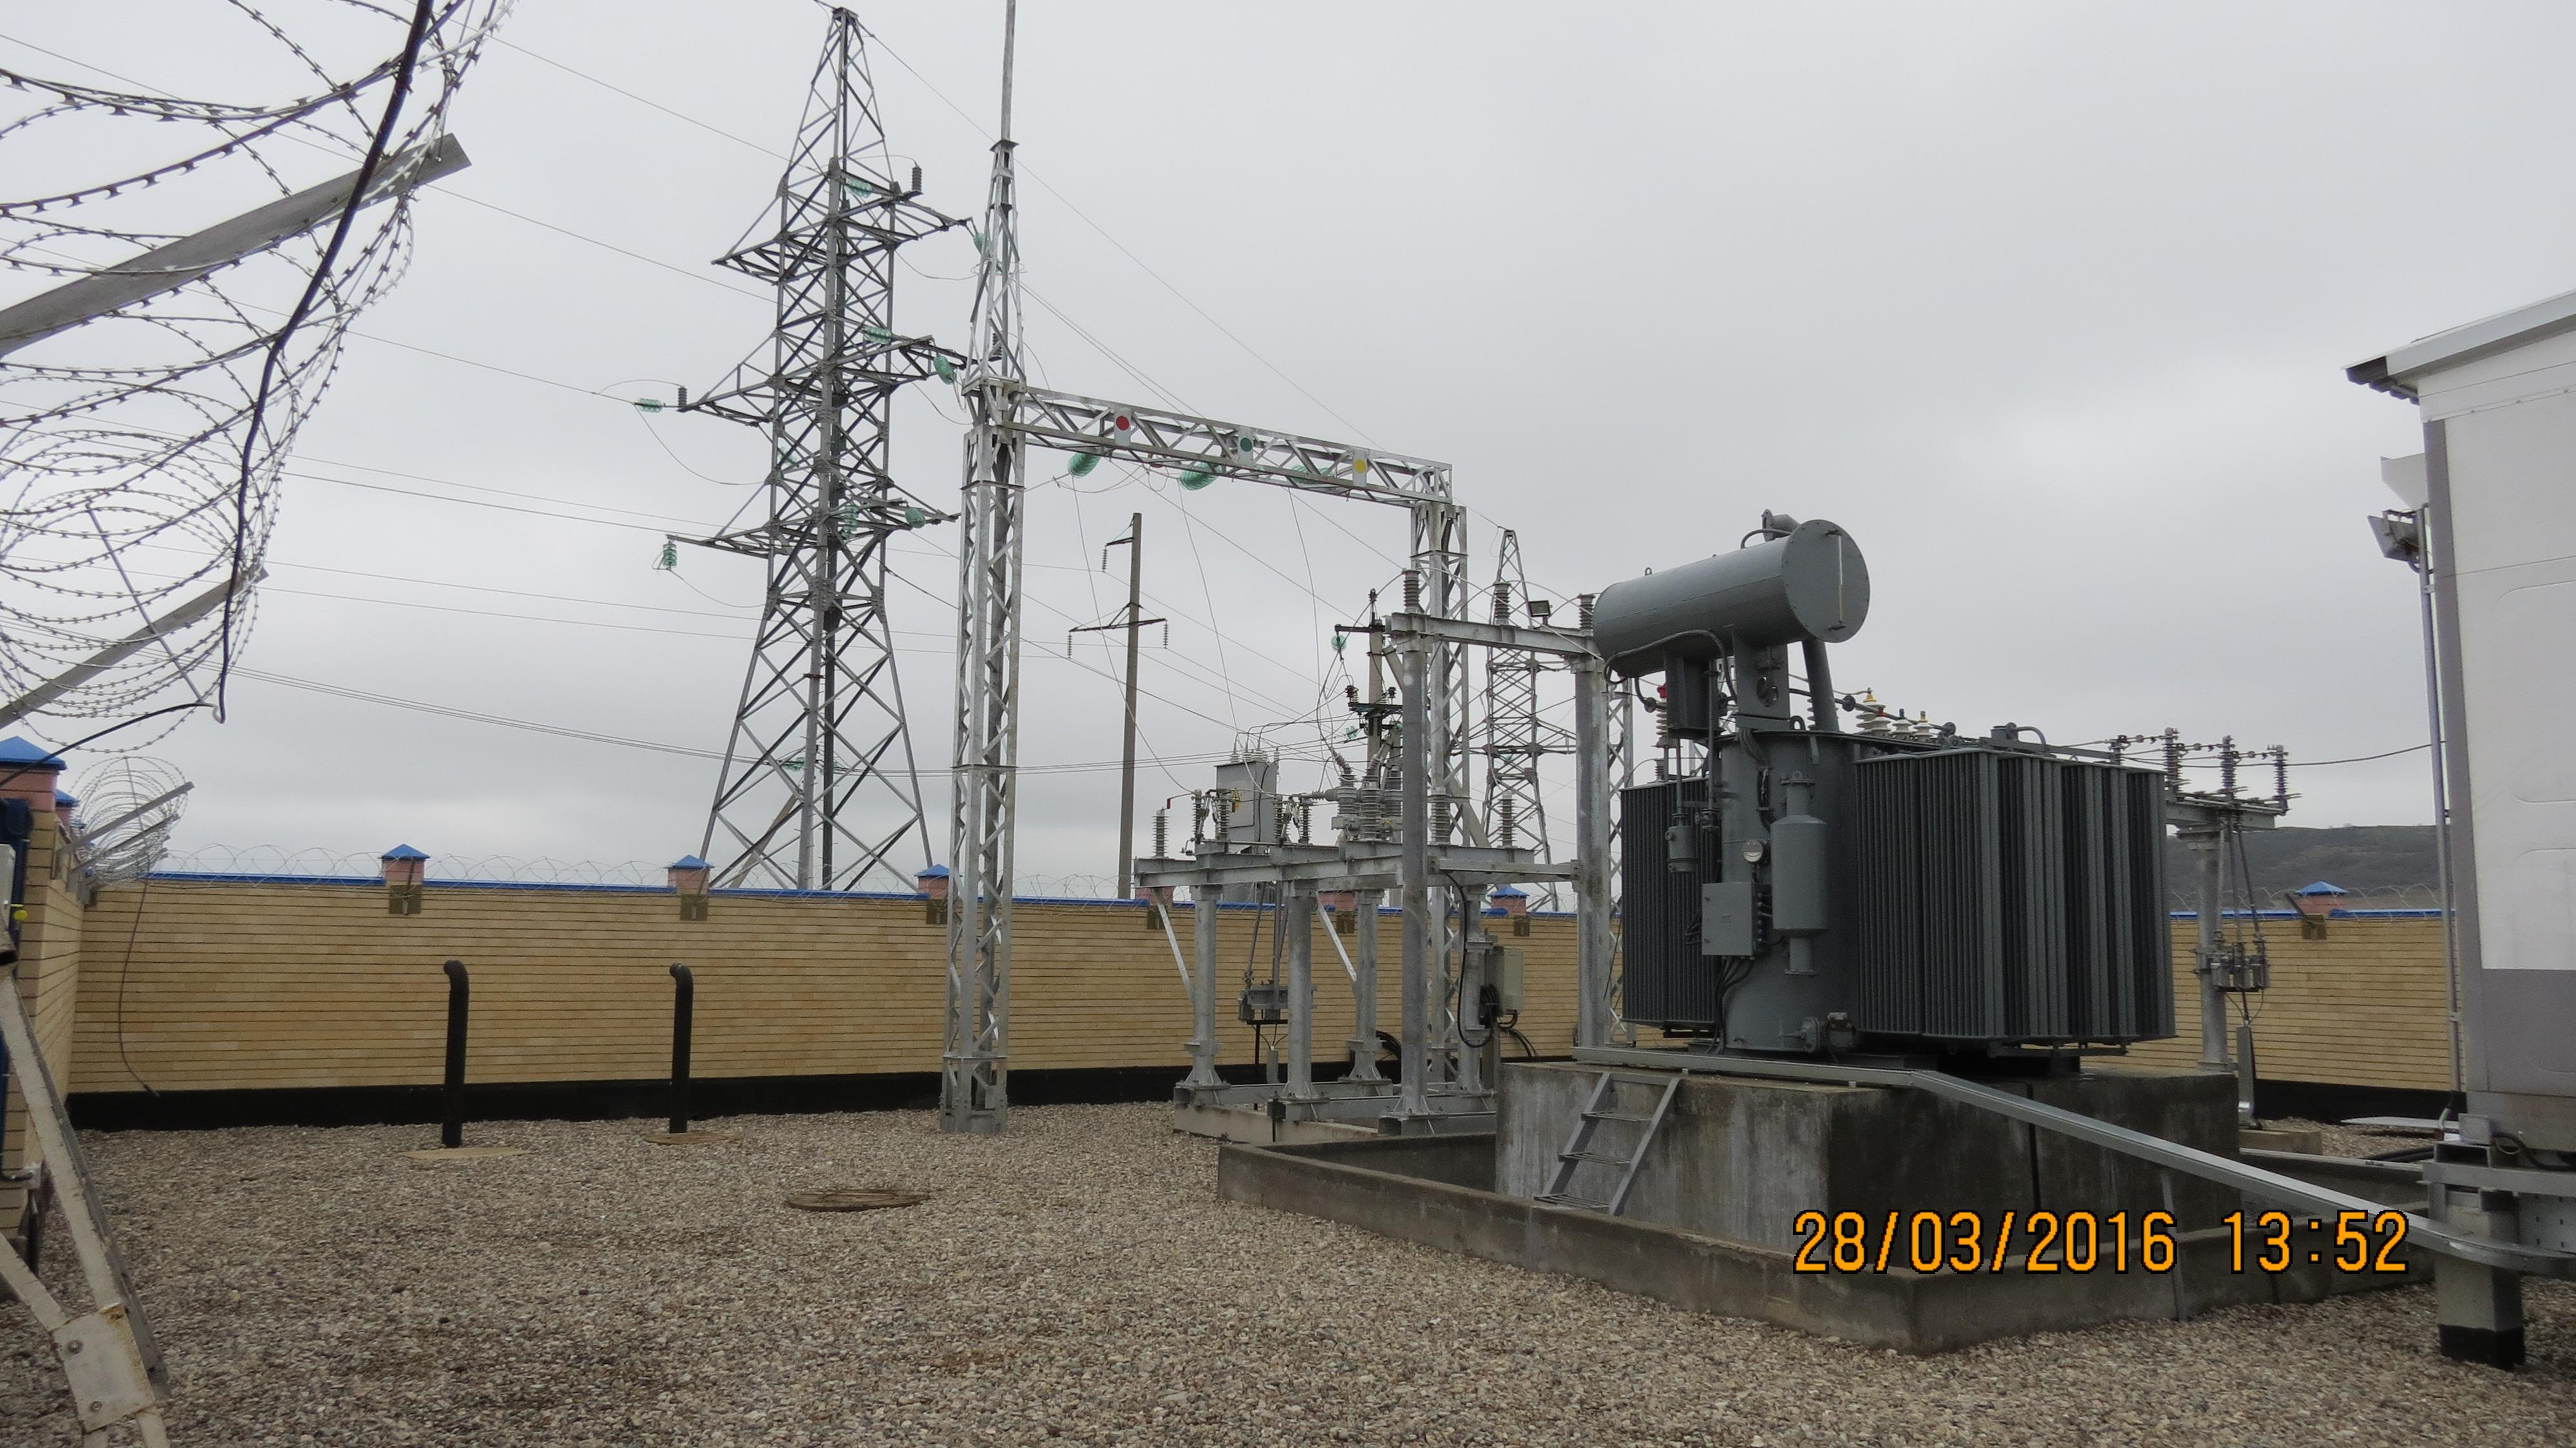 Branch office of Nizhny Novgorod Institute of Applied Technologies in Kislovodsk, which won the tender on new power center of electrical substation PS 35/10 Lenta (HV line 35, 10 kW) construction, is carrying out works on the site